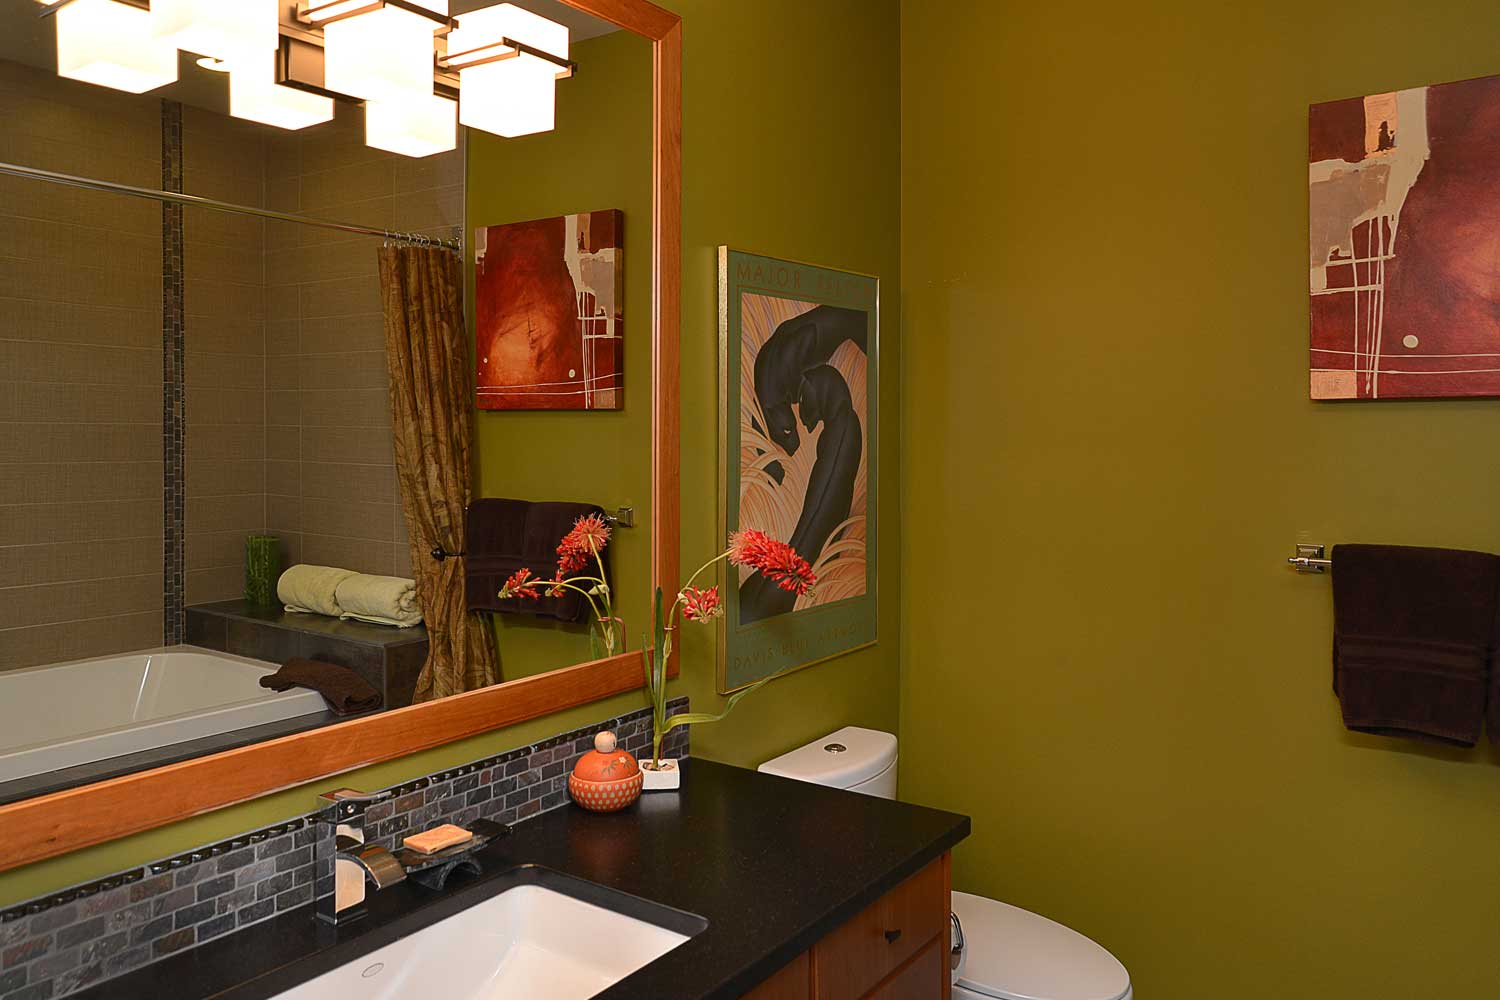 Artwork, flowers, and a large mirror can be found in the master bathroom of this 4 bedroom home for rent.